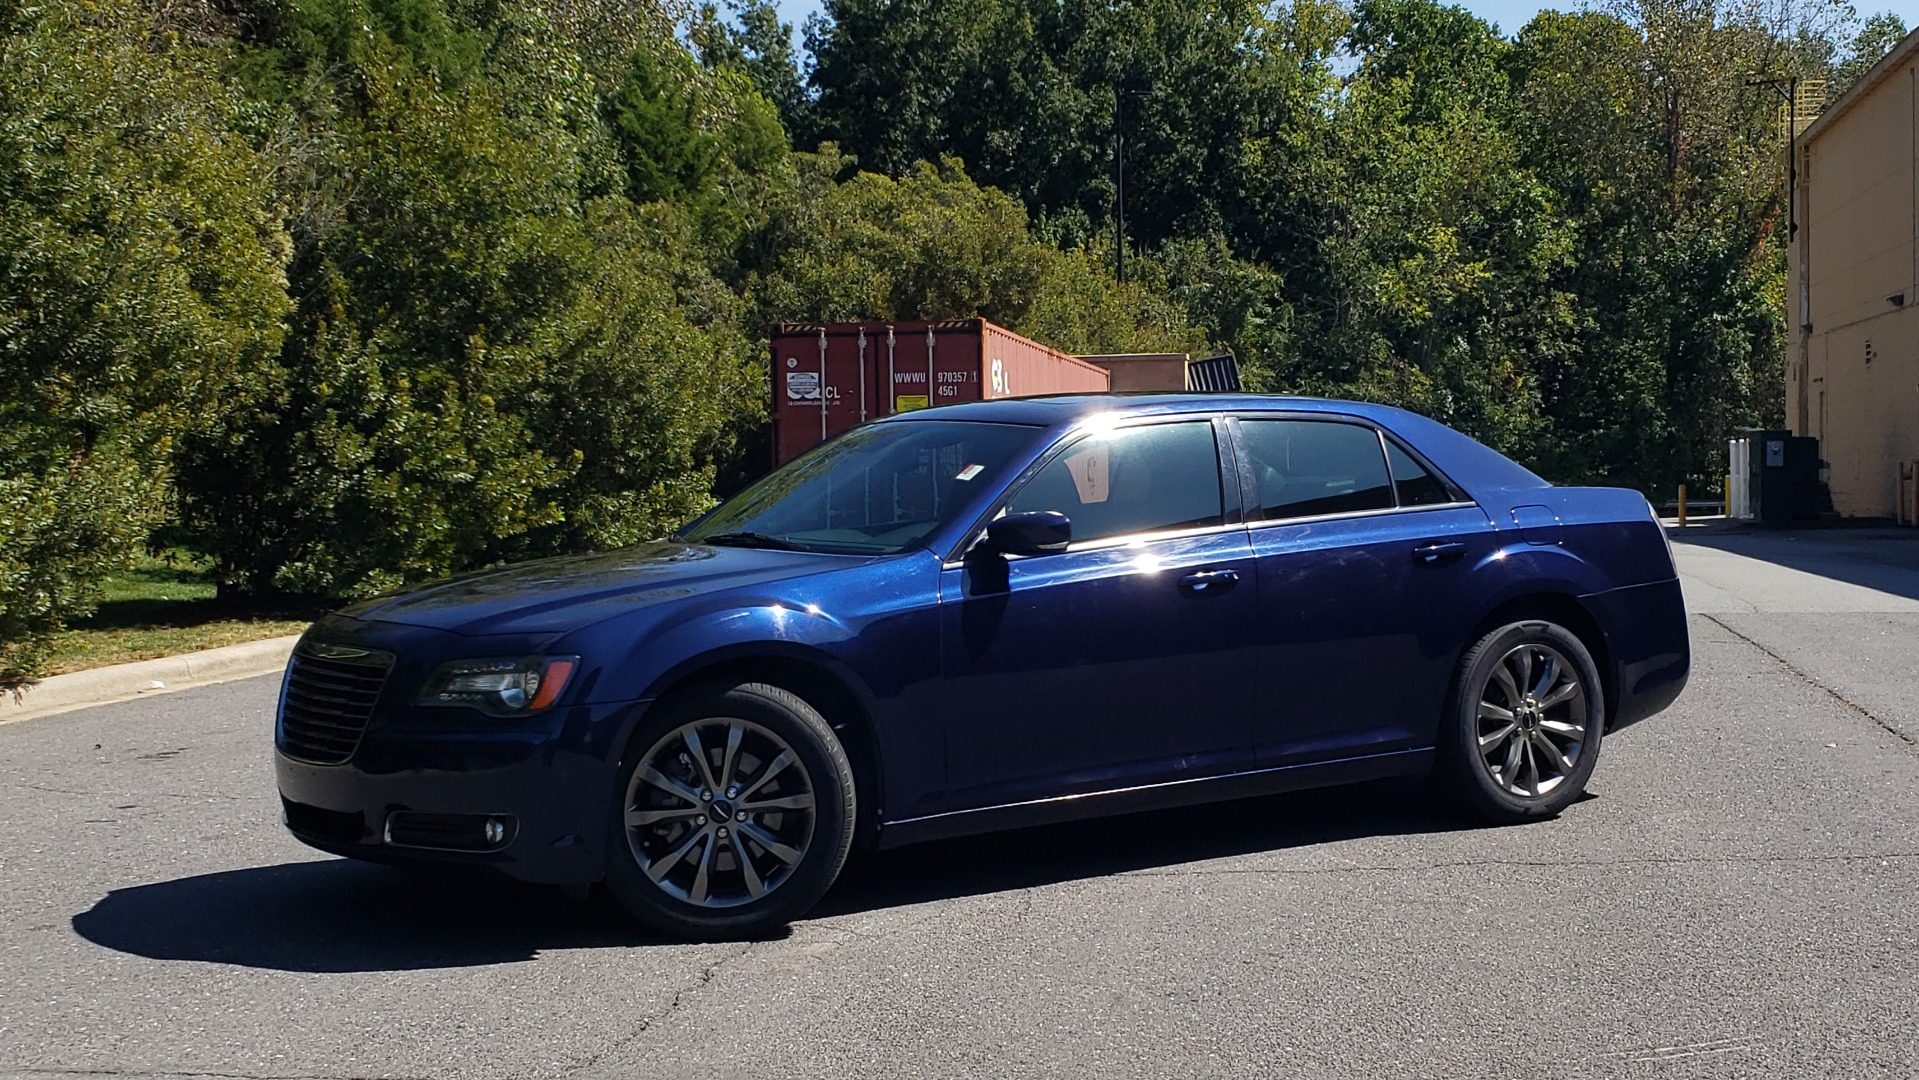 Used 2014 Chrysler 300 S AWD / SAFETY TEC / BLIND SPOT / LIGHT GRP / LUXURY GRP for sale Sold at Formula Imports in Charlotte NC 28227 2